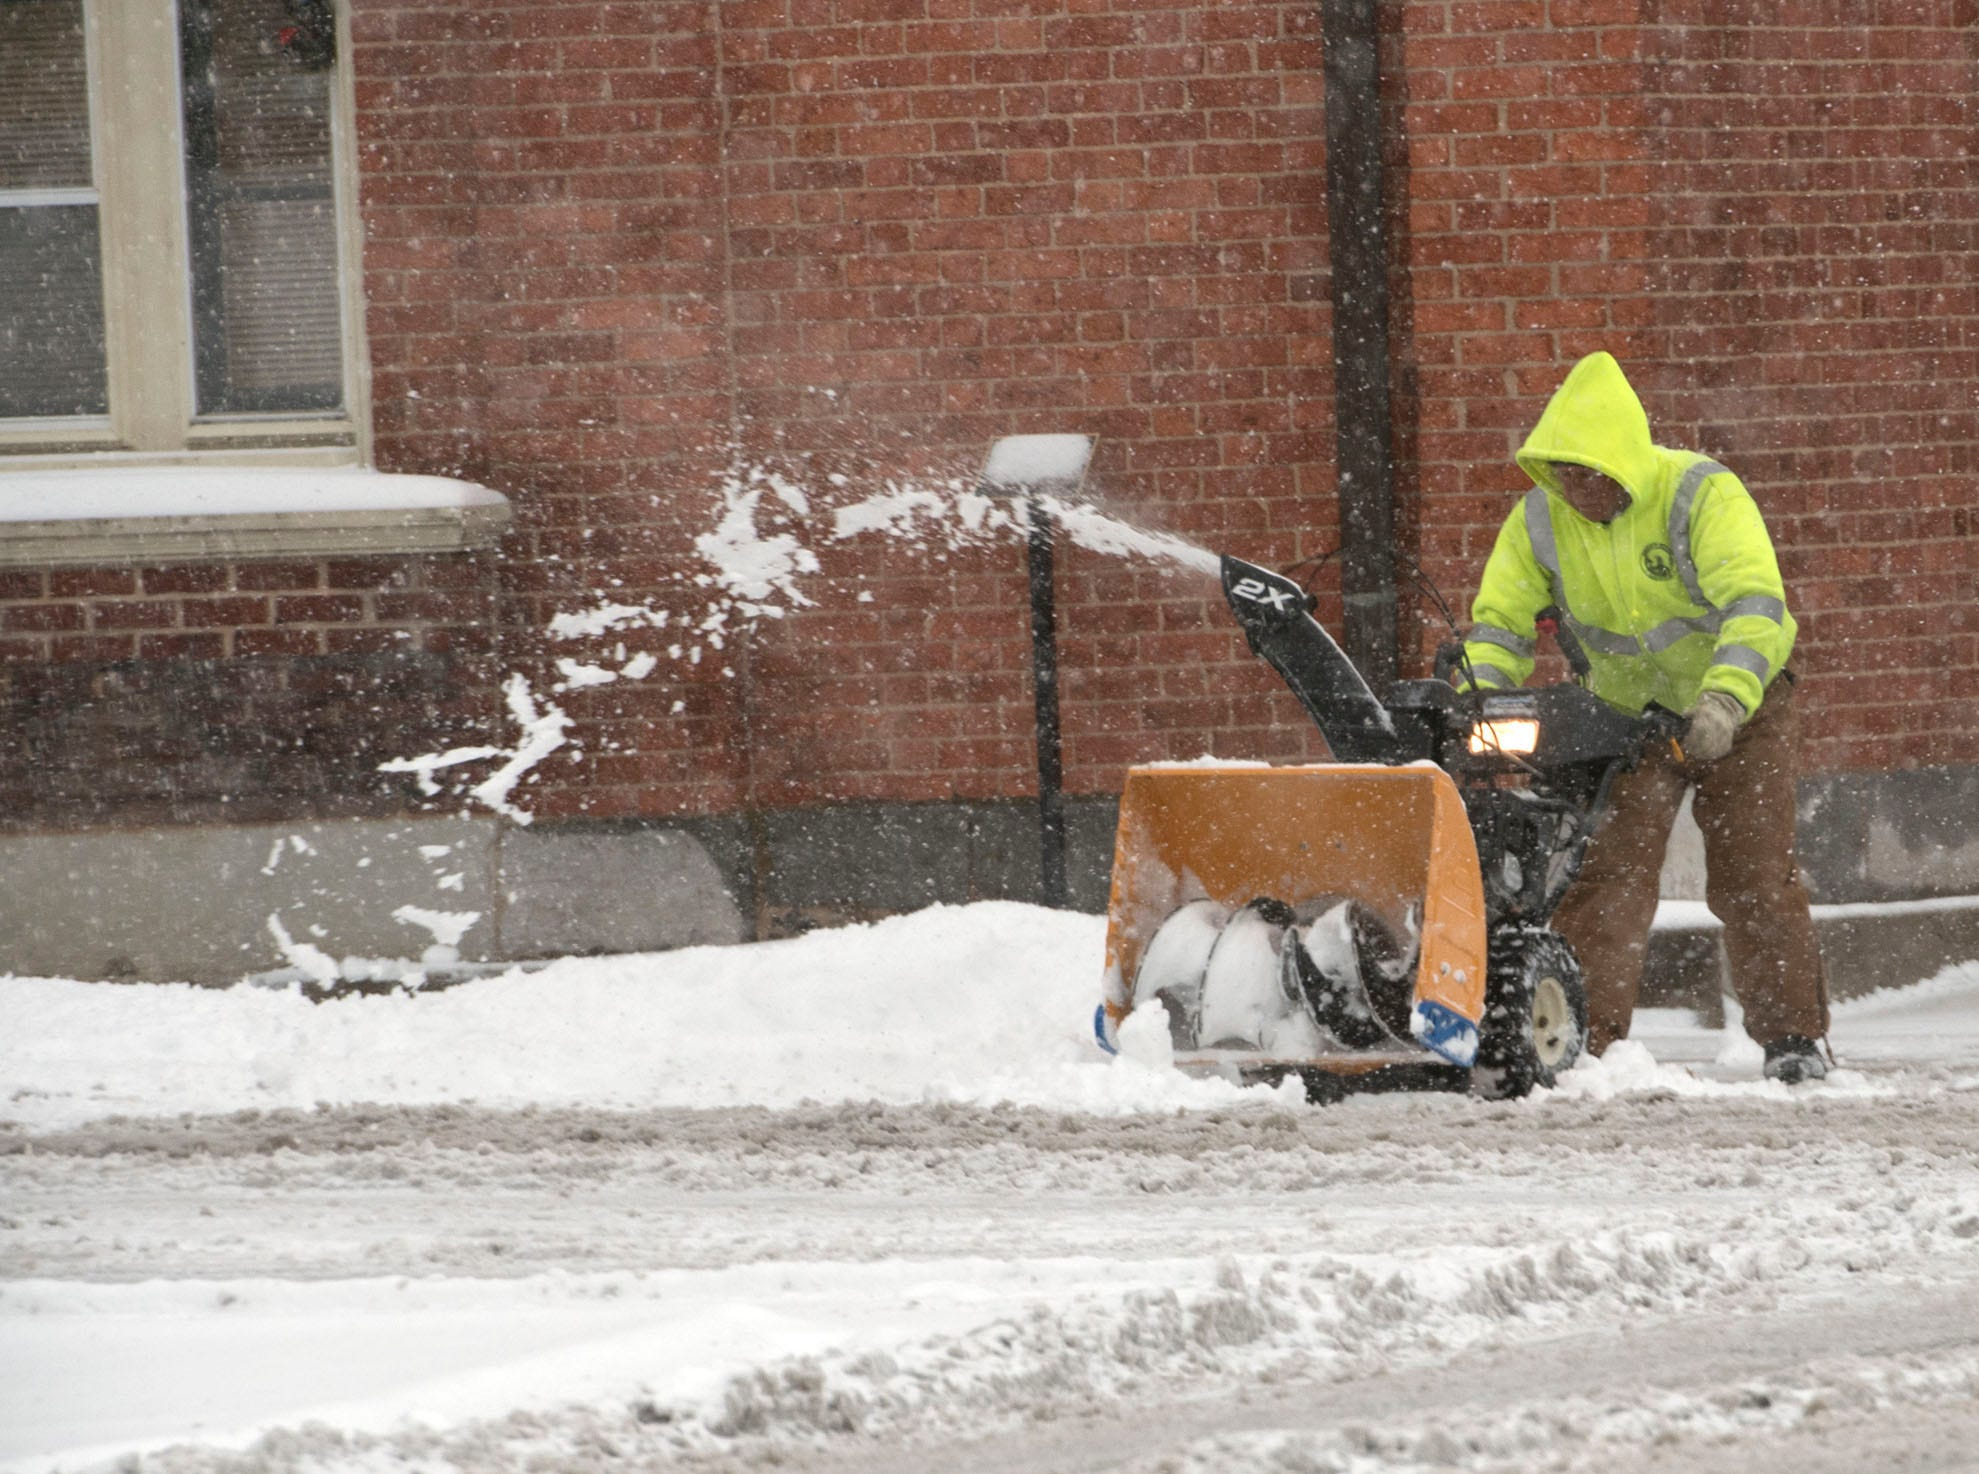 A worker clears snow off sidewalks in Chambersburg. A winter storm hit Franklin County on Thursday morning, November 15, 2018.